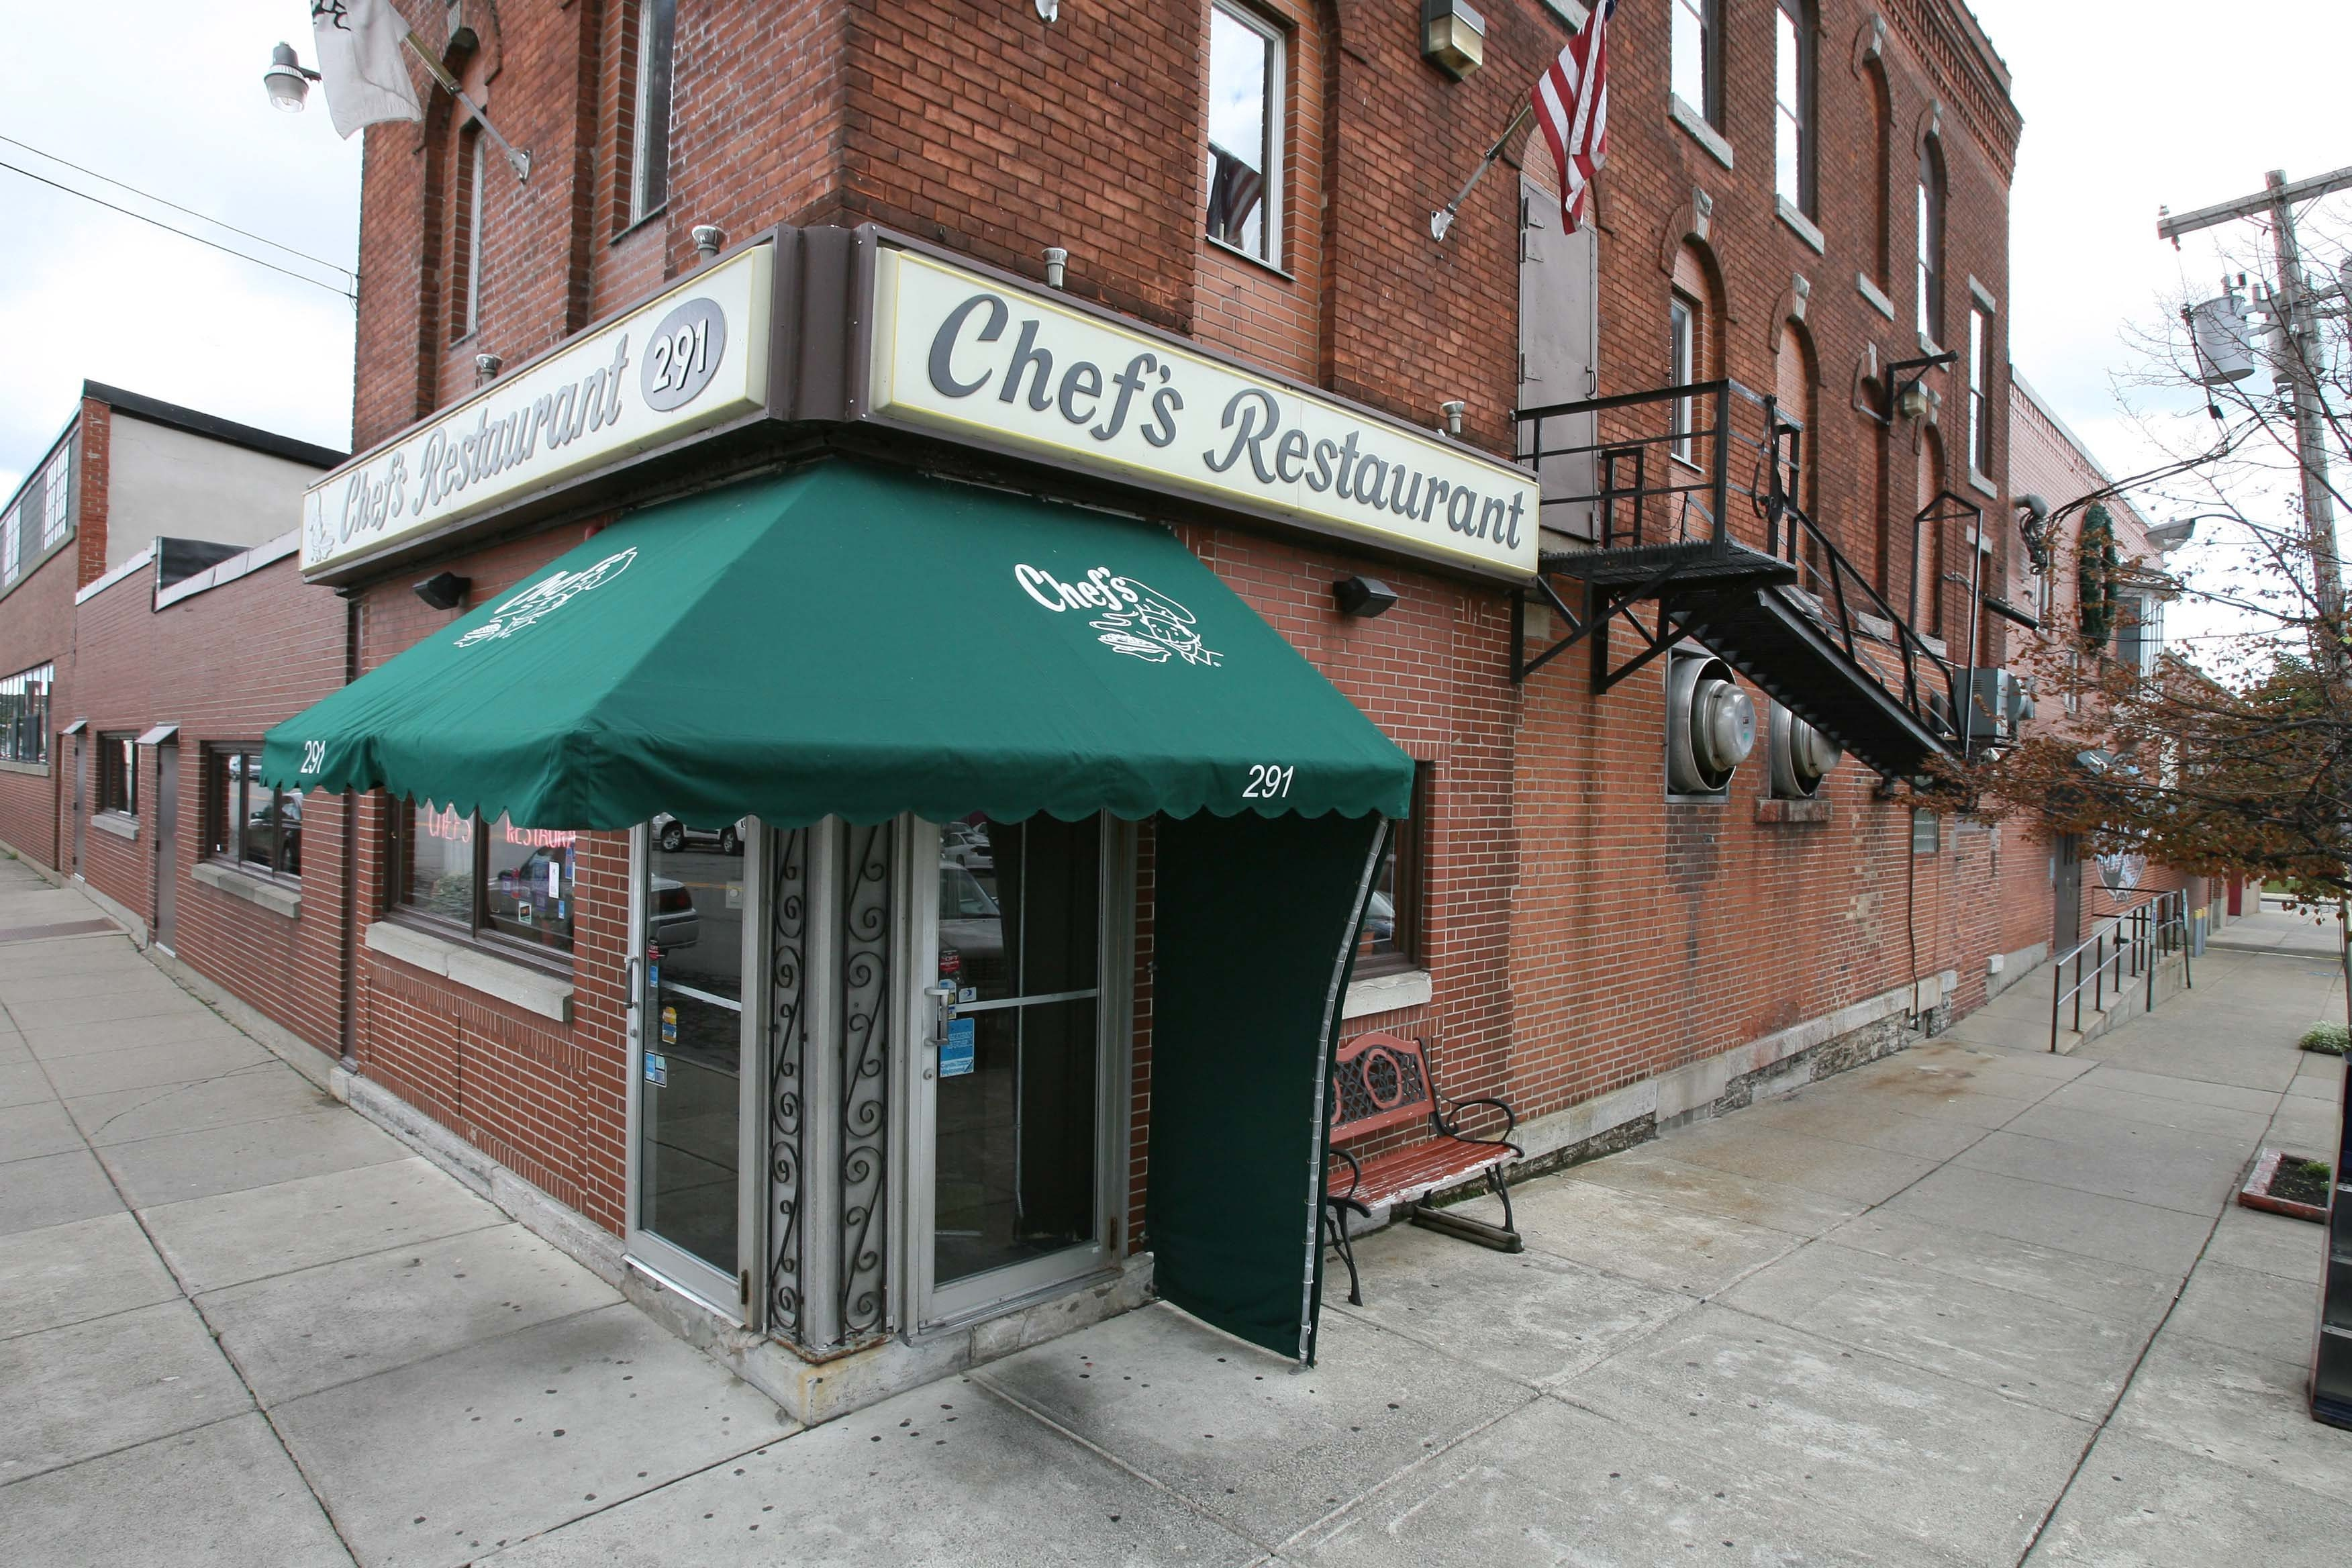 Chef's Restaurant on Seneca Street is celebrating 90 years of operating in downtown Buffalo.